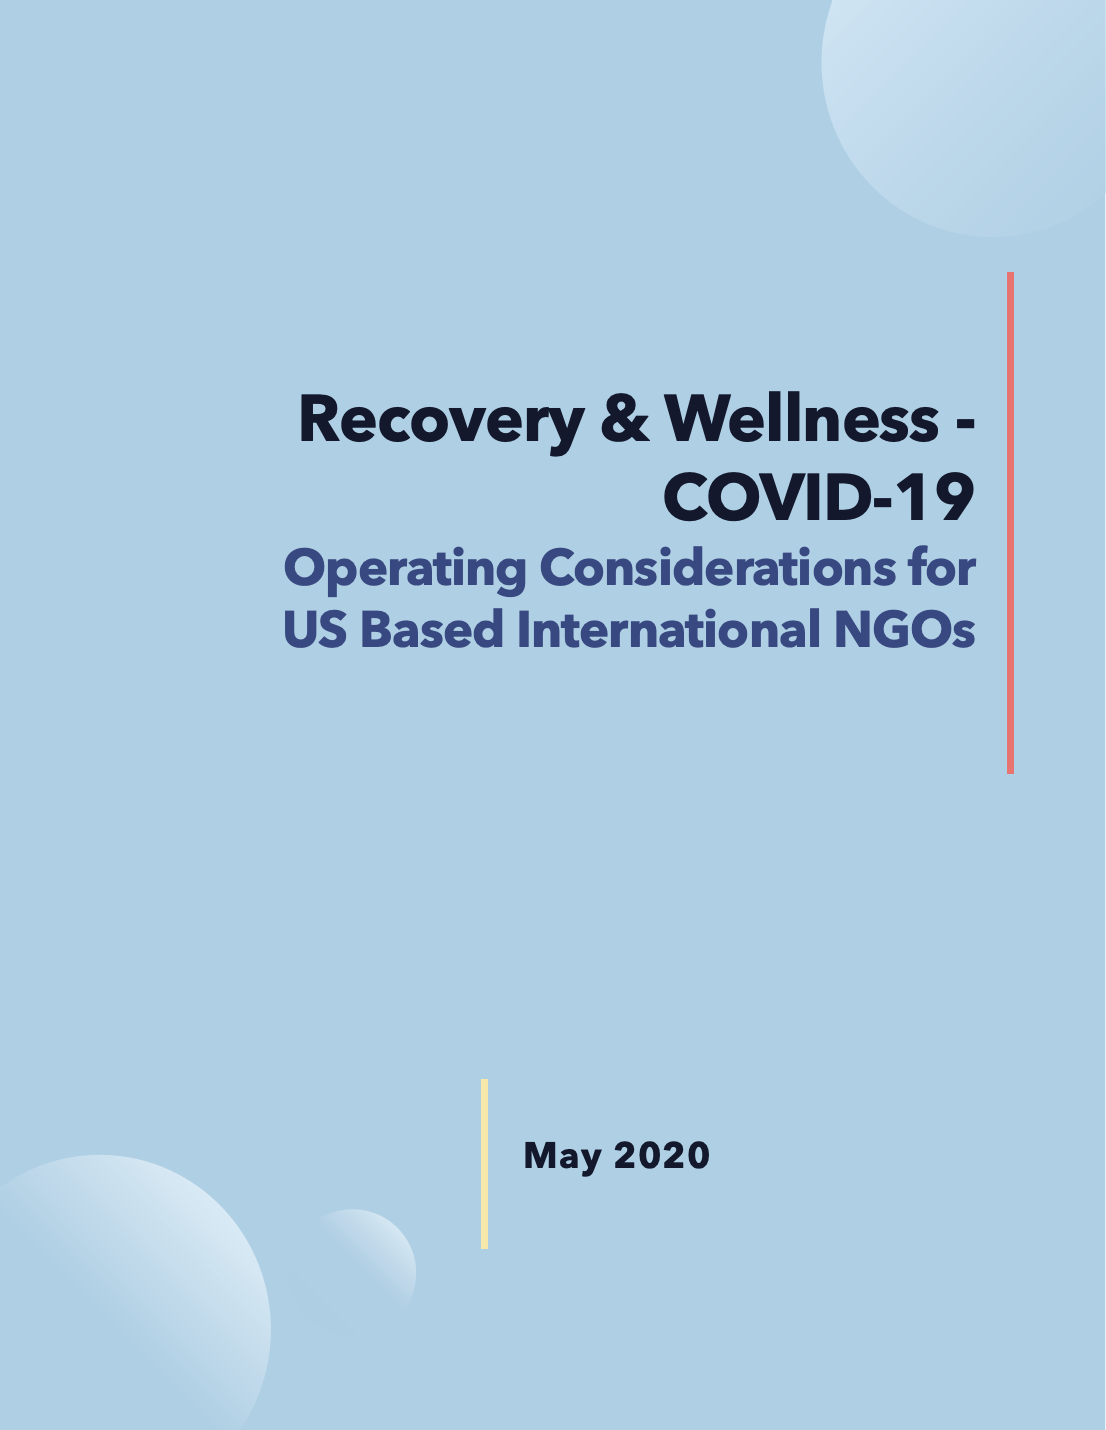 Recovery & Wellness, COVID-19: Operating Considerations for US Based International NGOs